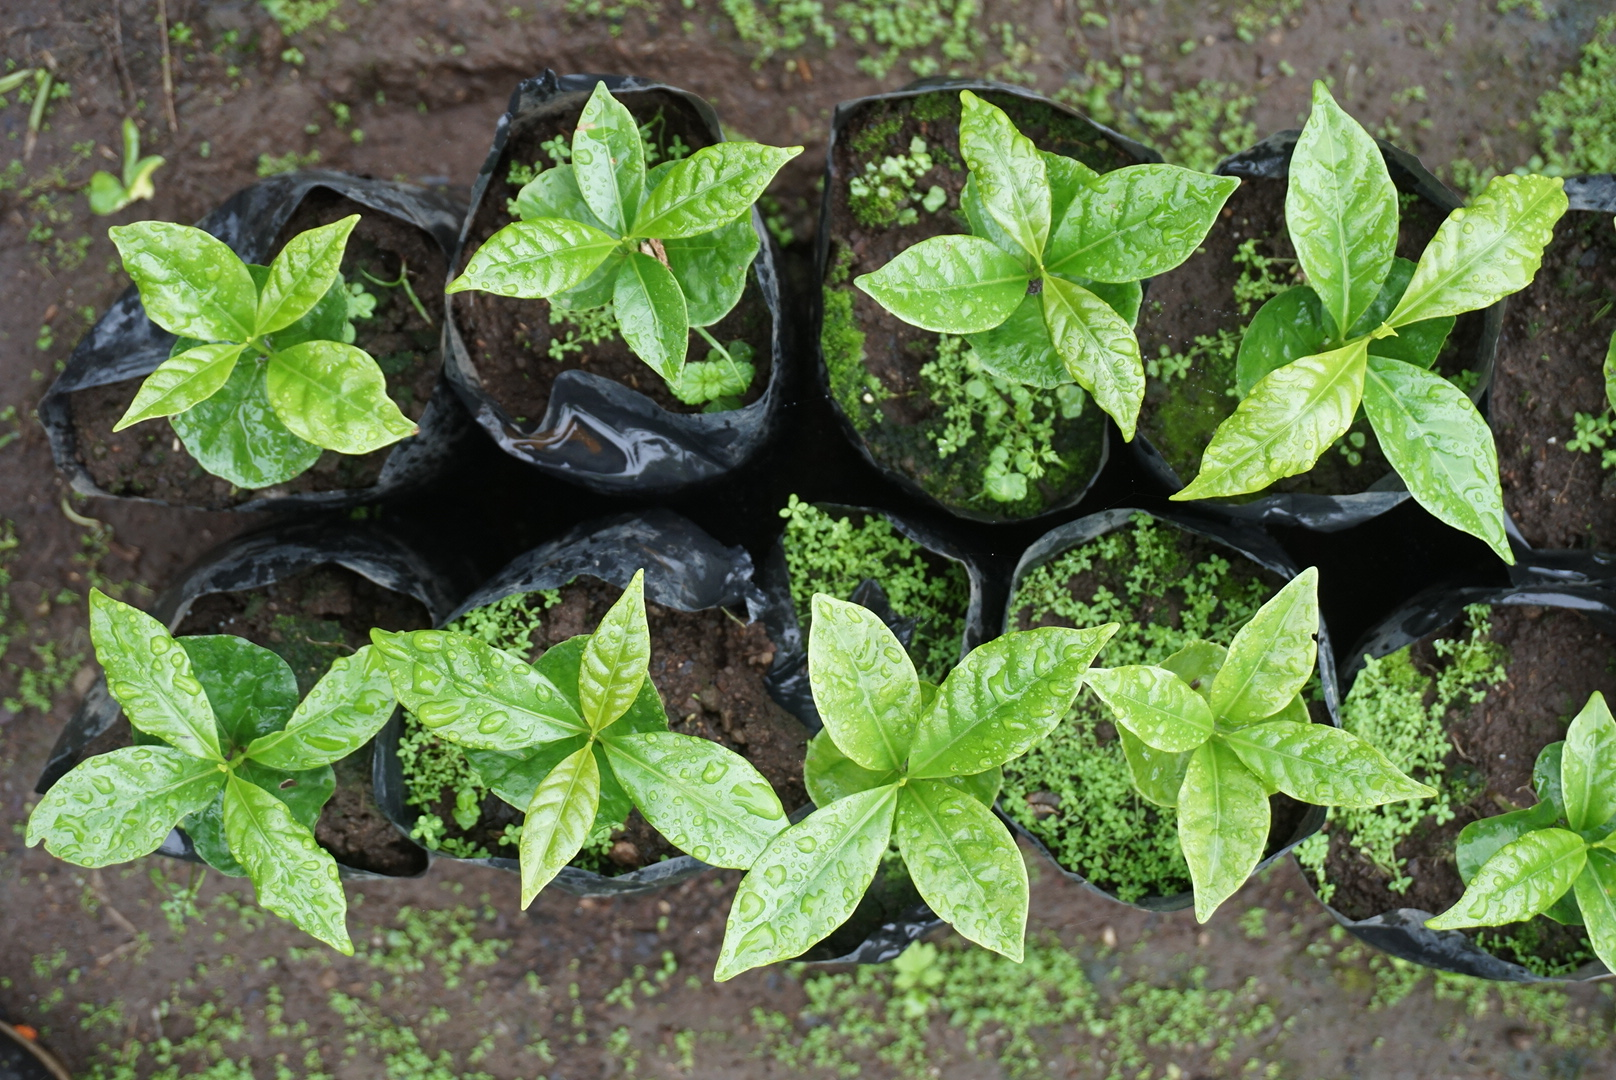 Samples of coffee plants before being planted